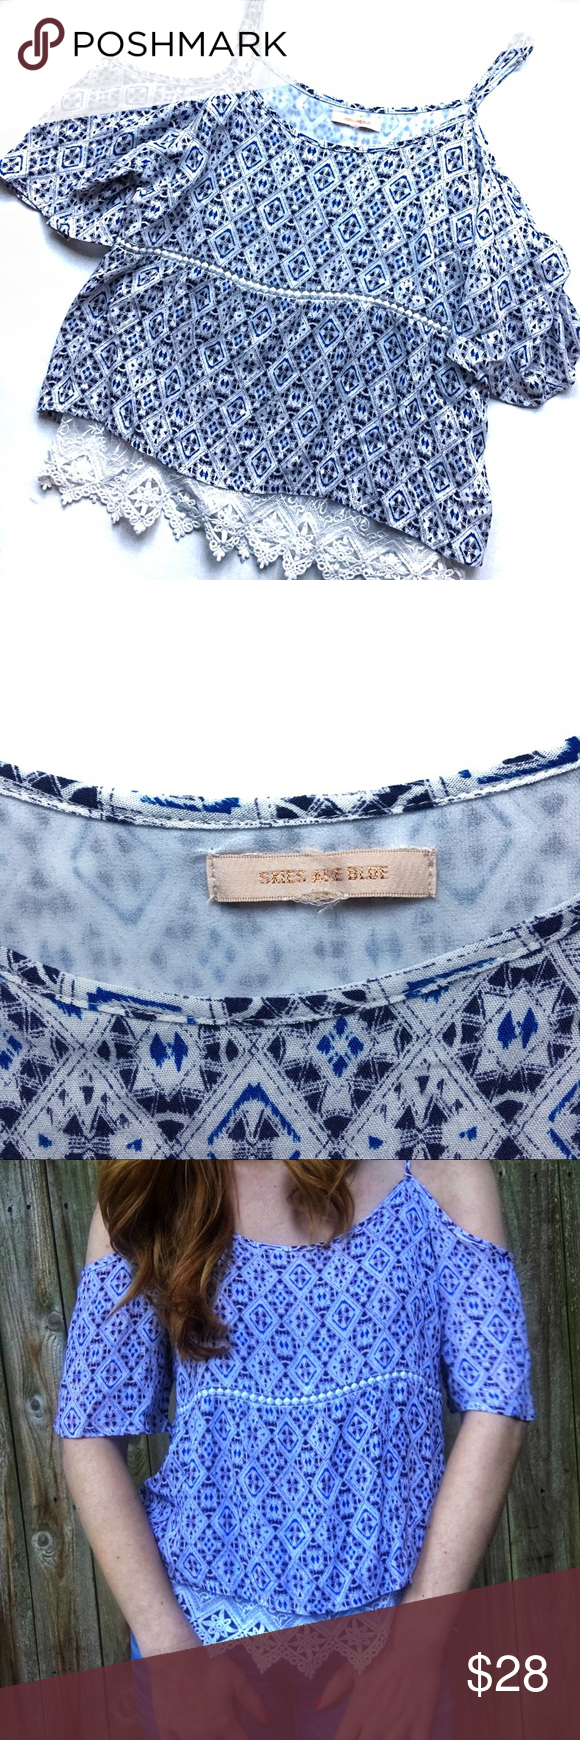 dd100aa1fe33a0 ▫️Skies Are Blue langlock sz S cold shoulder top ▫️Skies Are Blue langlock  sz S cold shoulder top. Feminine white and blue top with geometric  patchwork ...